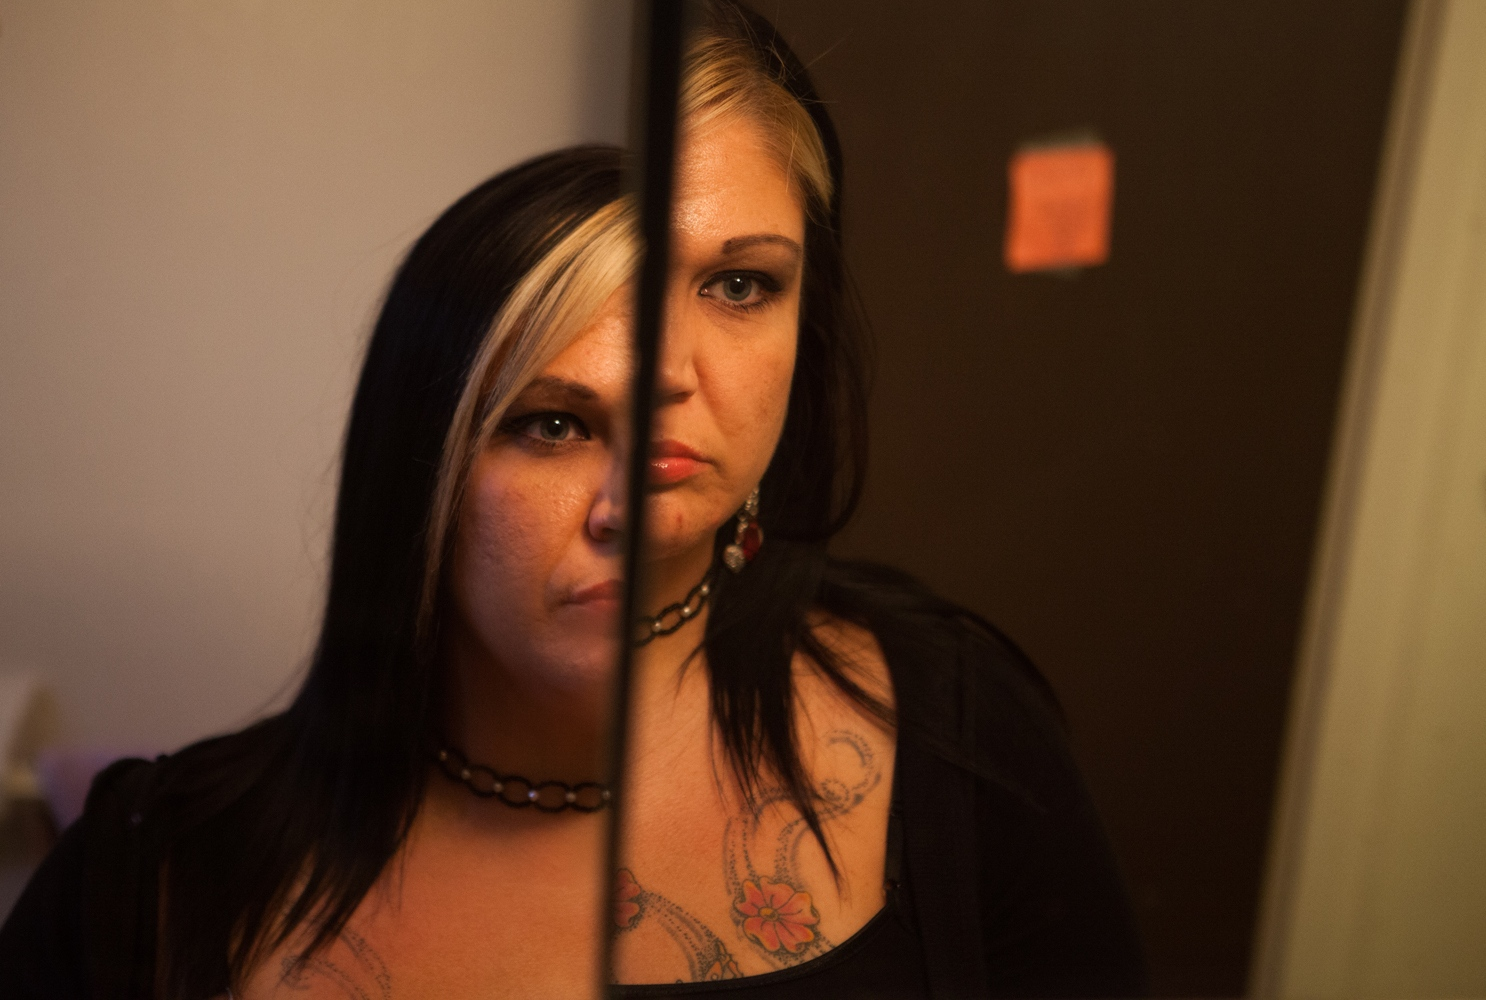 Melanie Dillon, 34, looks at herself in a mirror in the bathroom of an apartment provided by Amethyst, an organization that helps addicts and alcoholics, including sex trafficking survivors, get on their feet. Dillon has been in this apartment since January 2014.